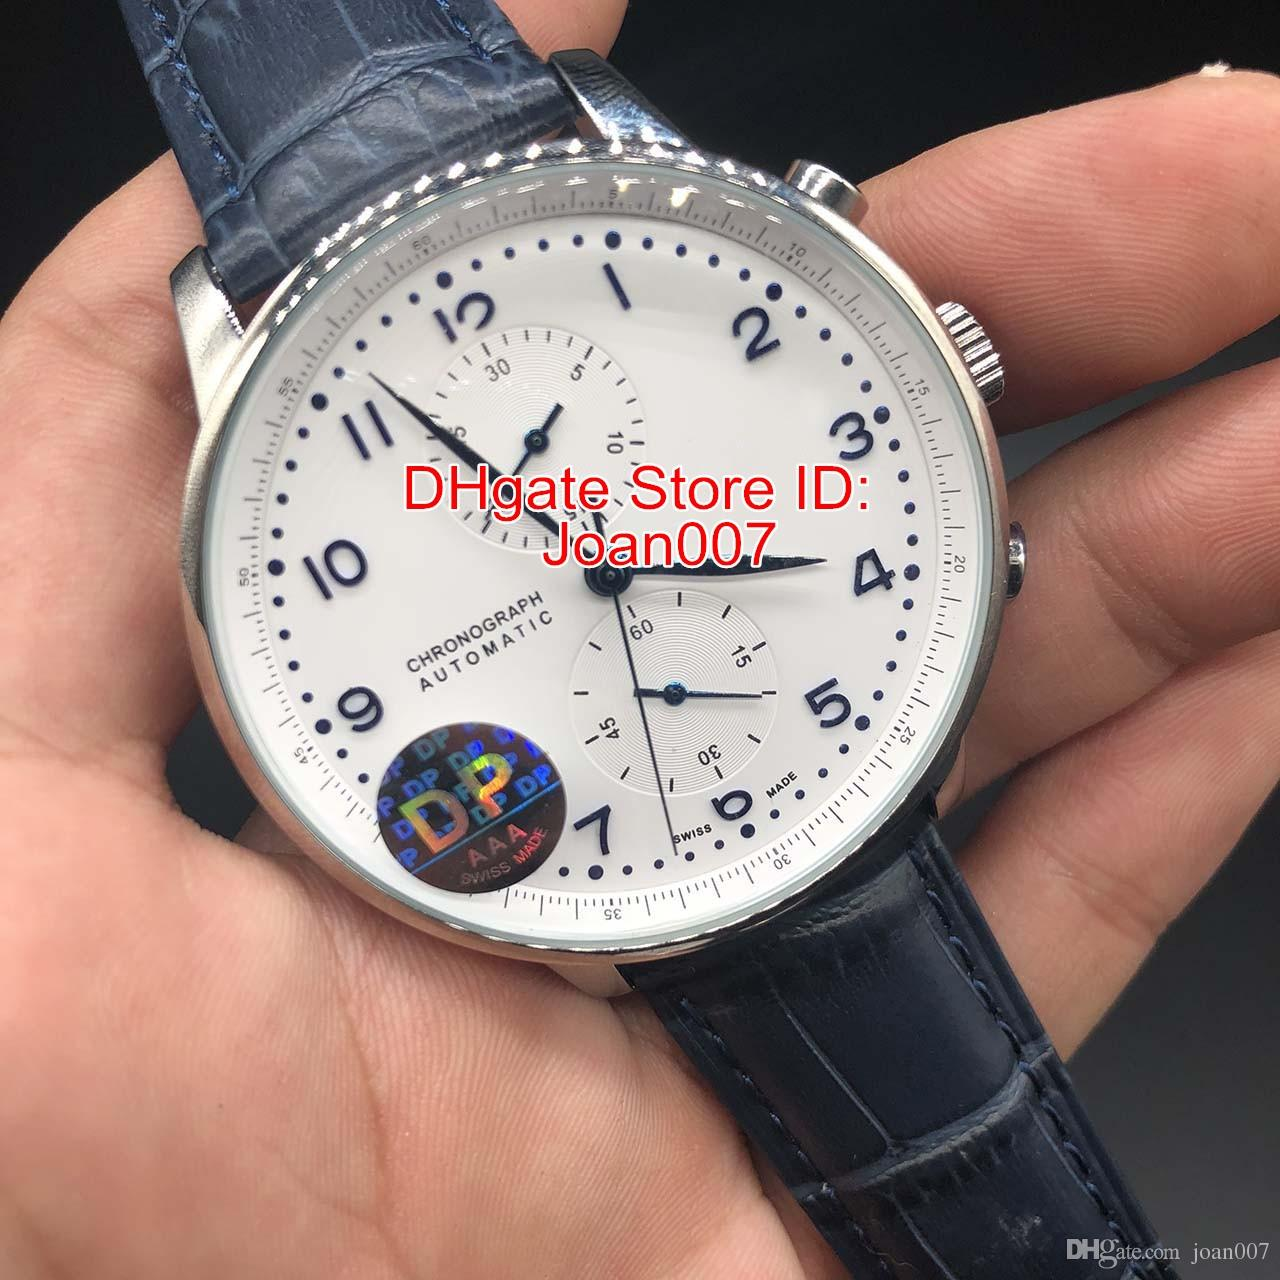 DP Factory Make Luxury Watch Blue Face Stable Automatic Movement No Chronograph Blue Leather strap Original Clasp Best Quality Men's Watch